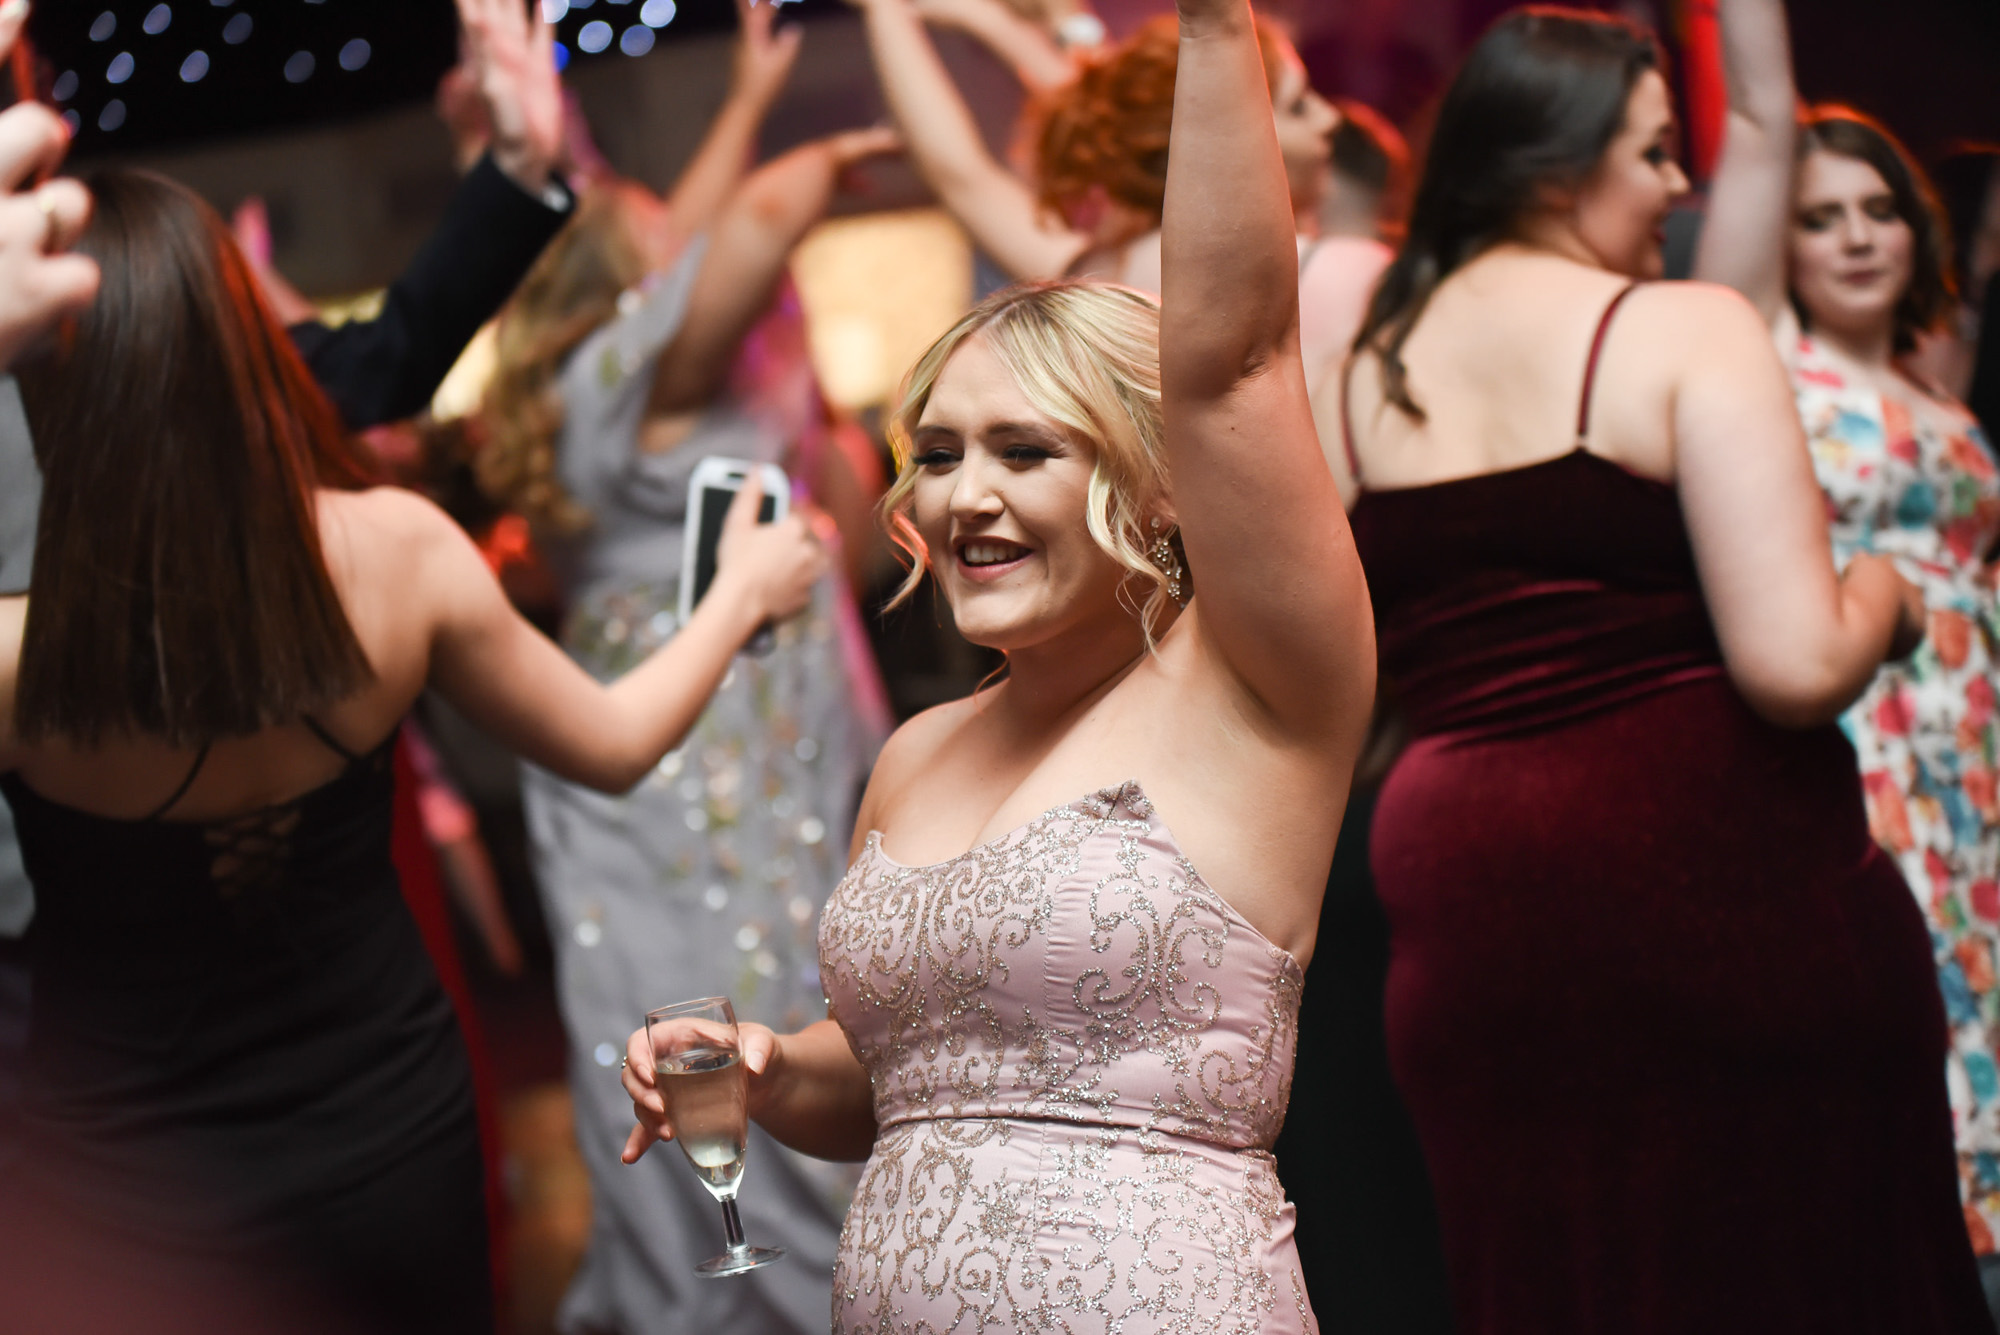 UCLAN_MT_BALL_2019_456.jpg